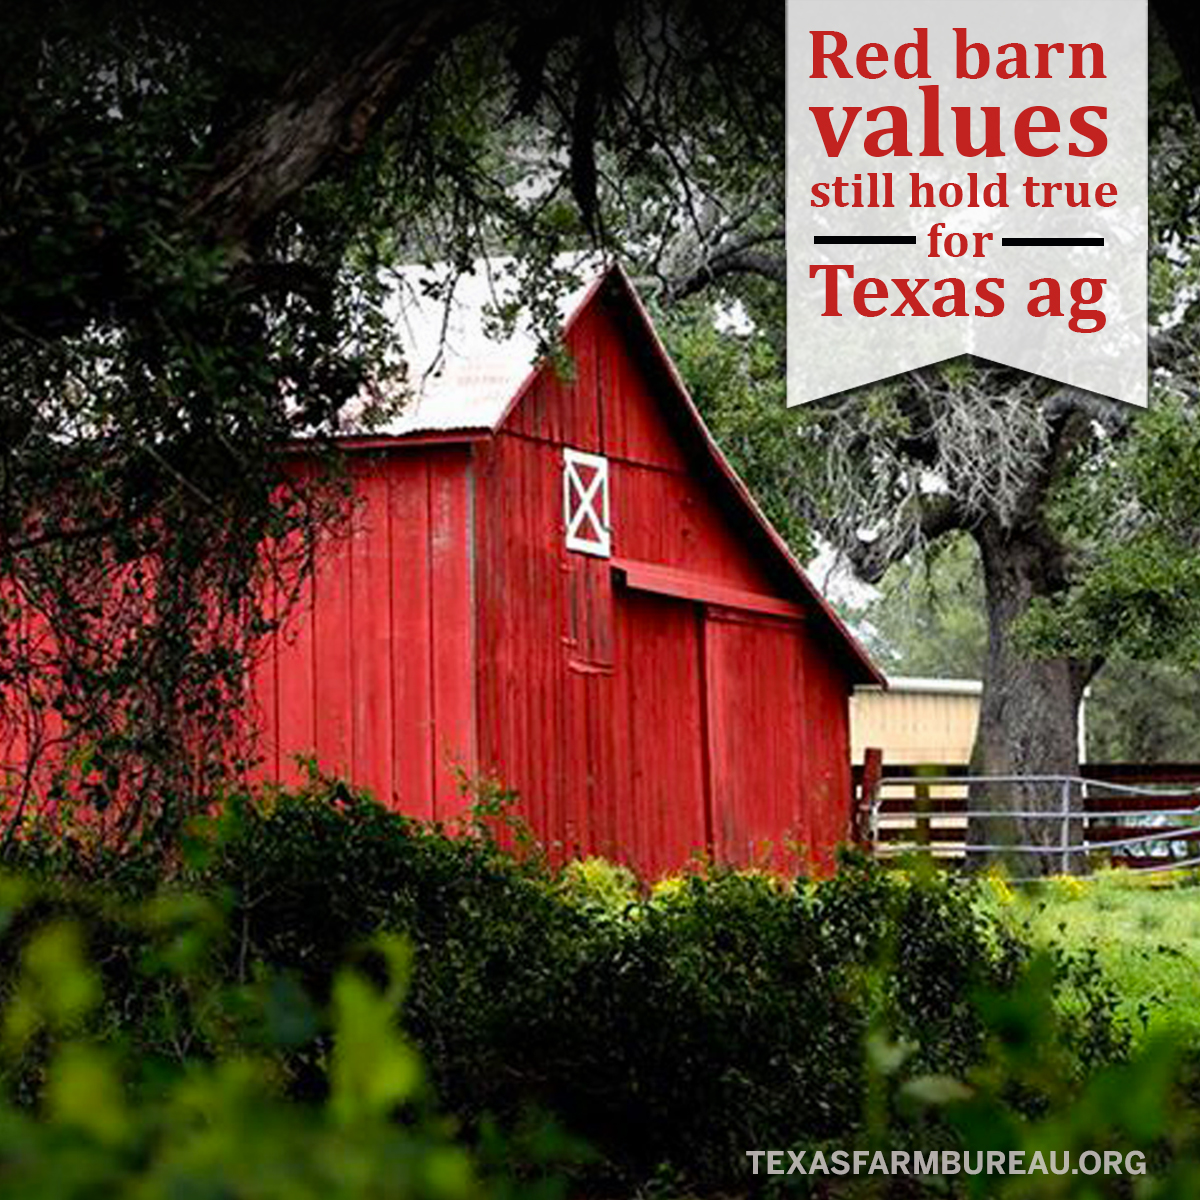 RedBarnValues_texasAg